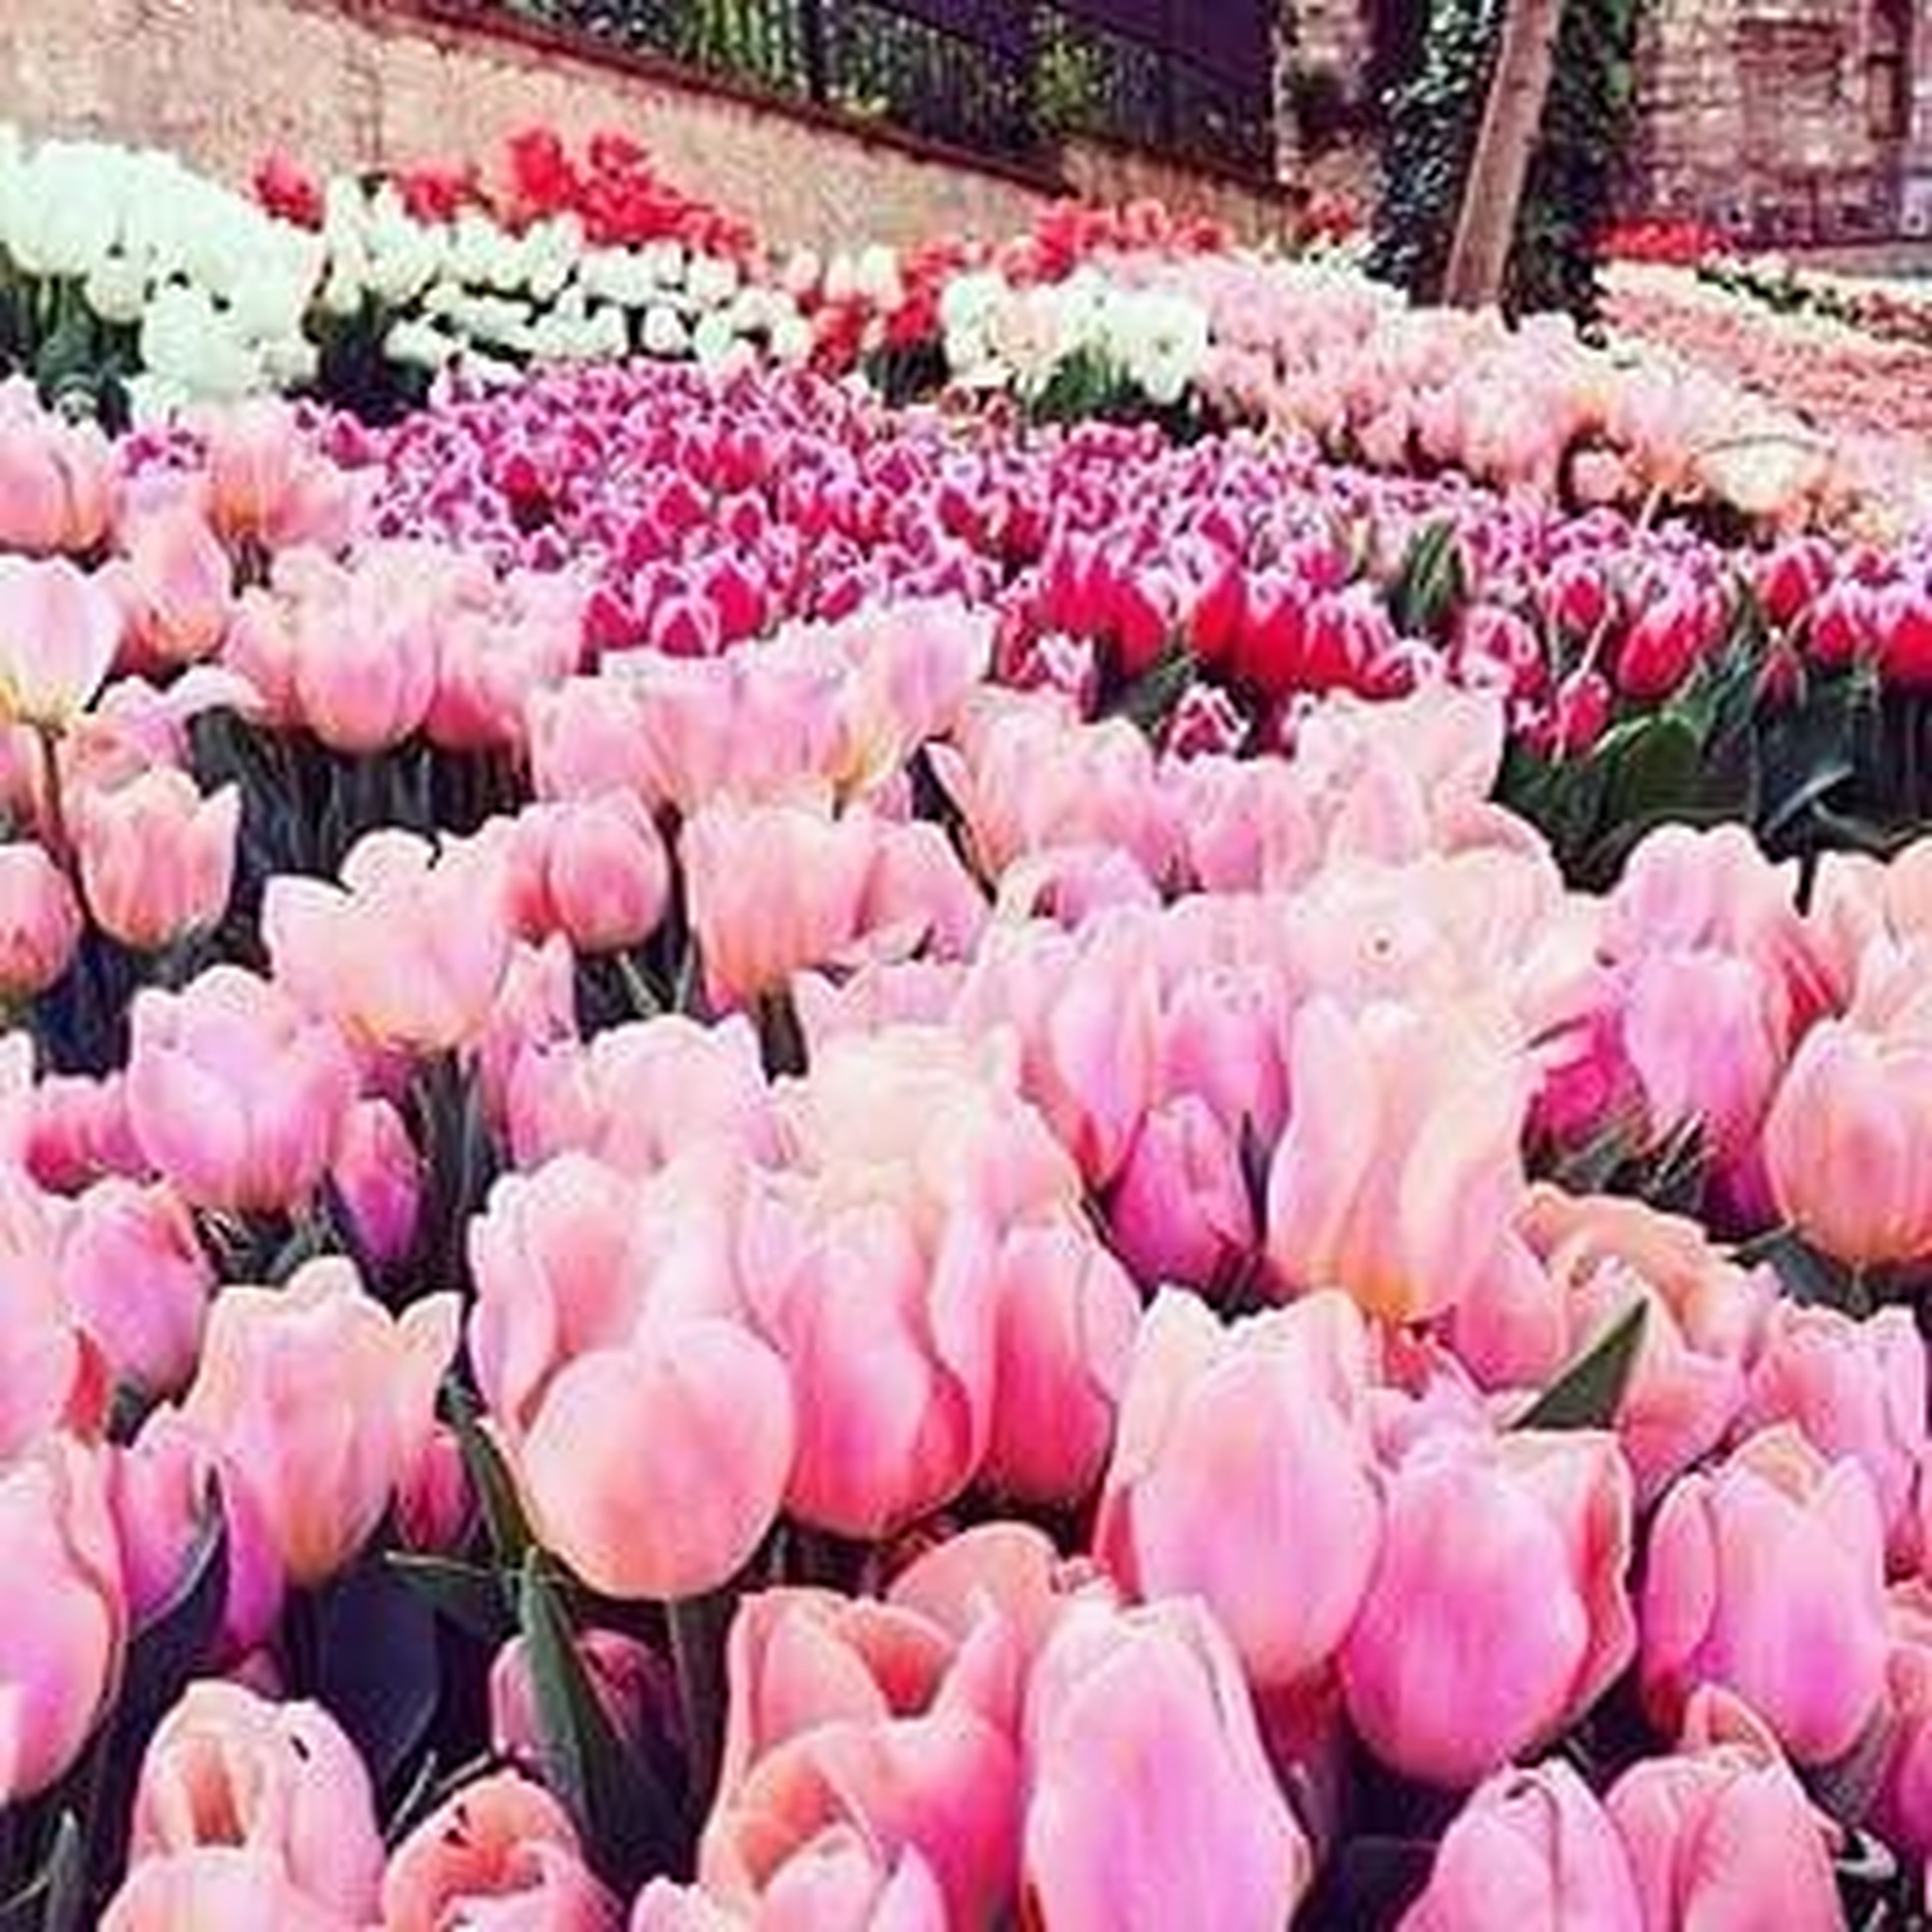 flower, freshness, pink color, abundance, fragility, petal, variation, for sale, beauty in nature, tulip, nature, blooming, retail, large group of objects, pink, flower head, choice, outdoors, high angle view, growth